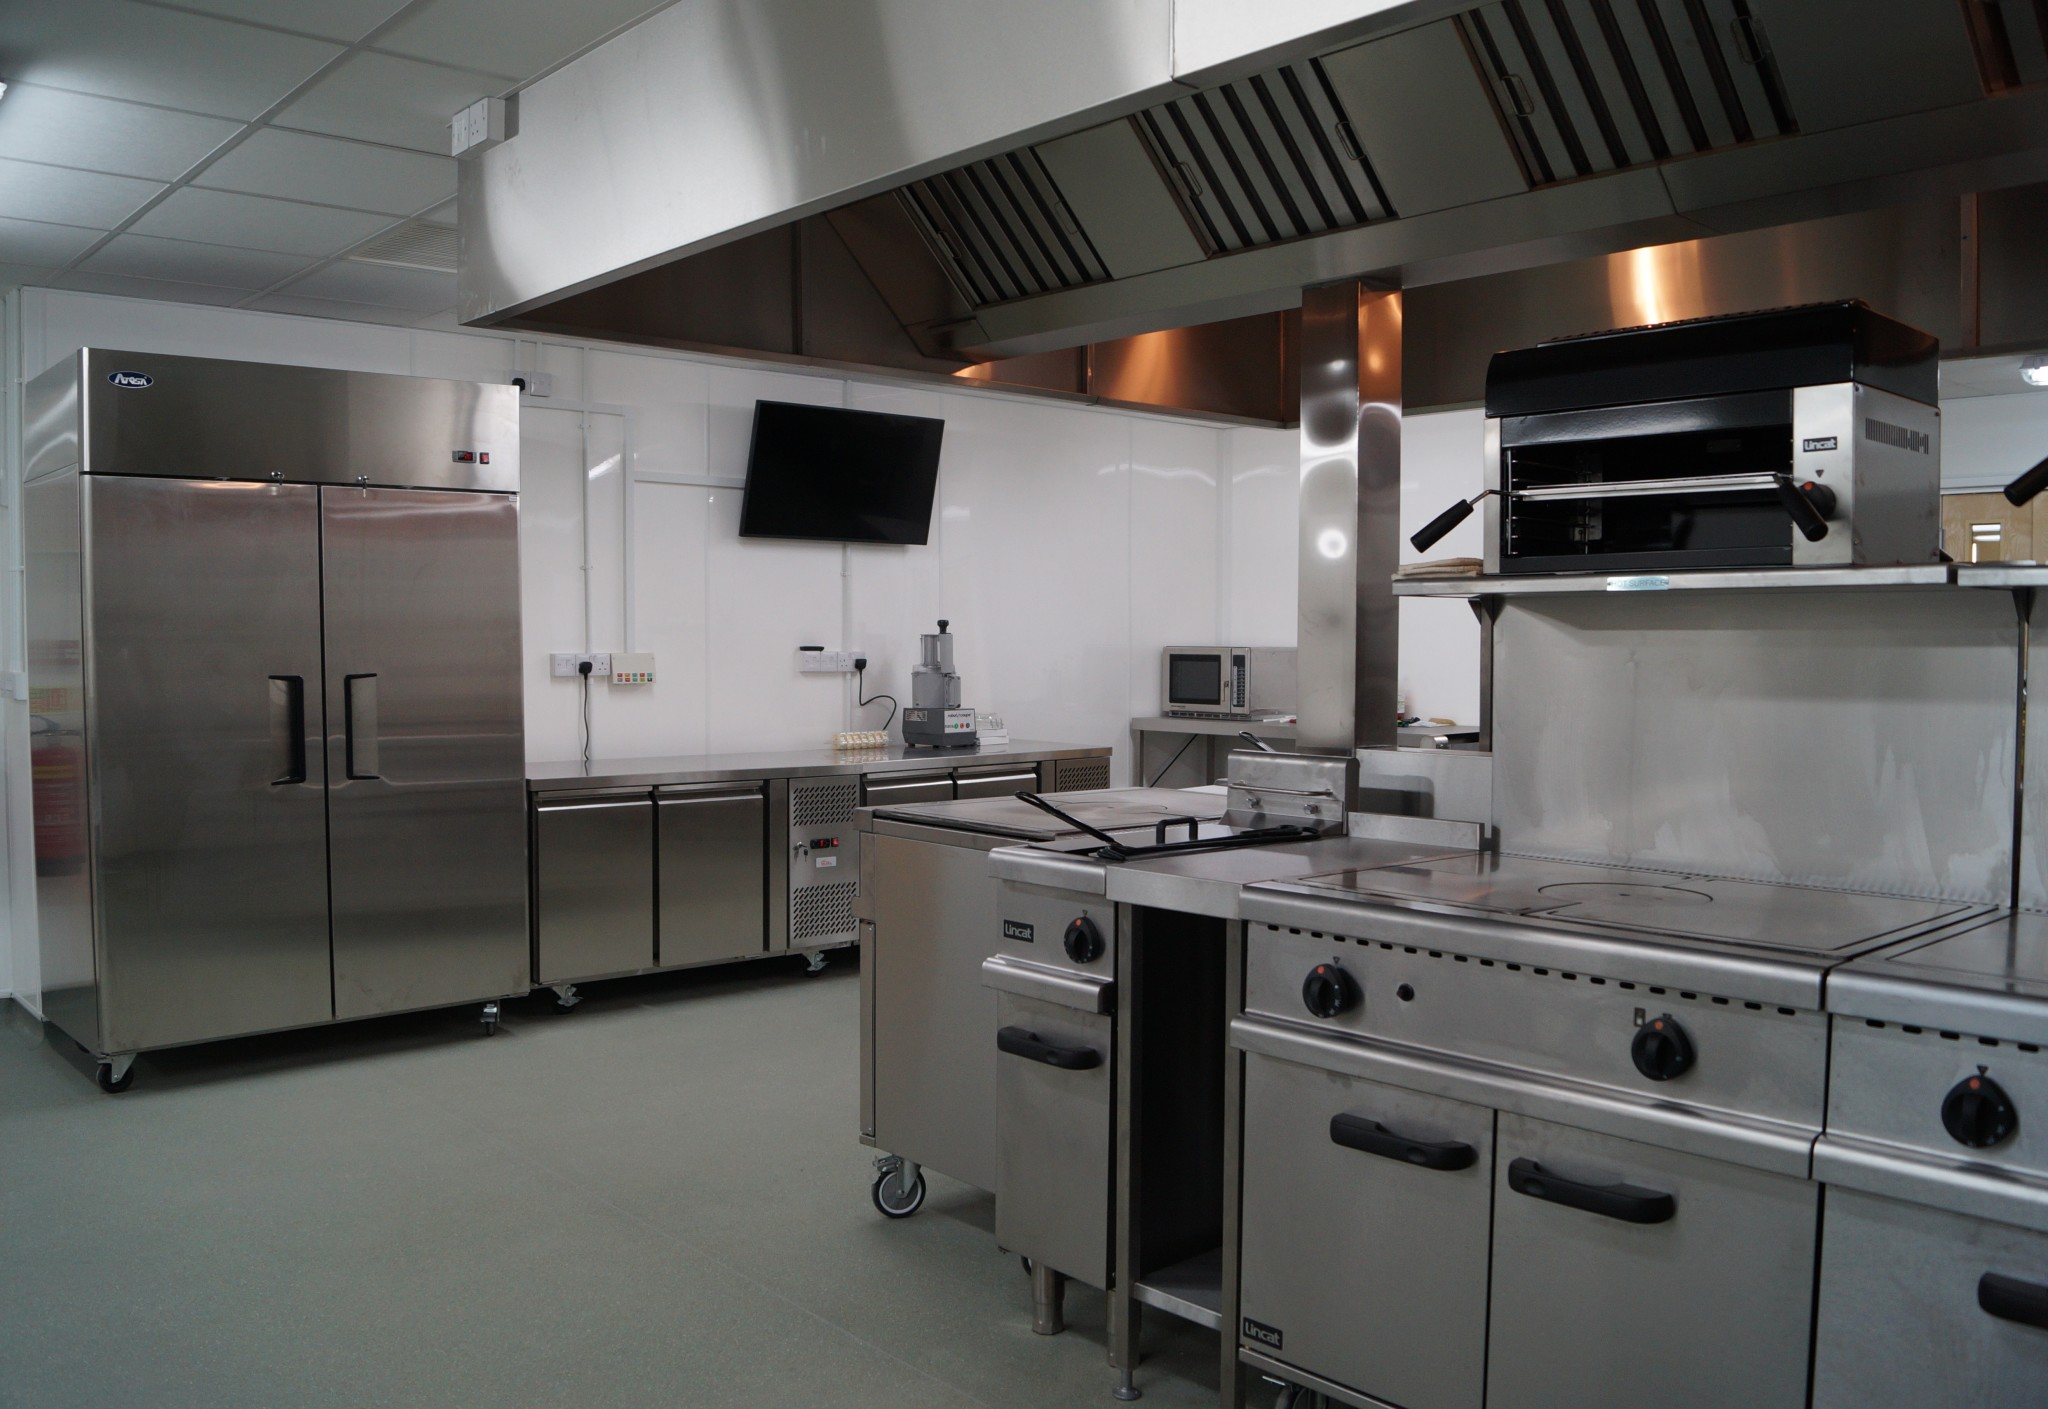 Reception, Coffee Shop, Catering Kitchen, ITC Suites - Waller Services Kent